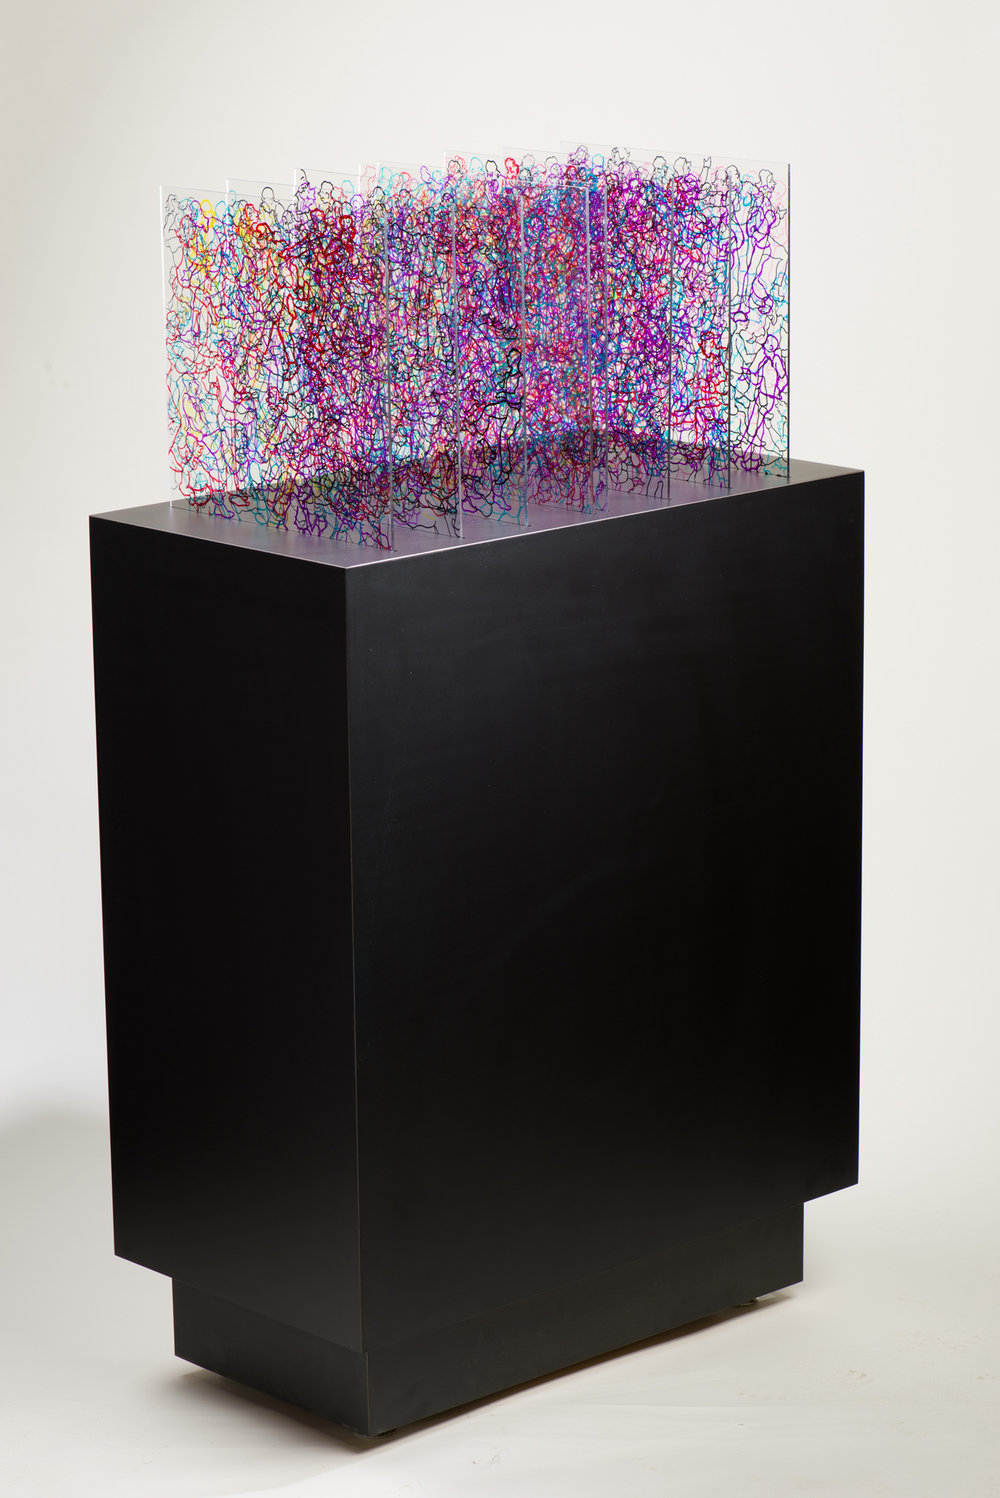 """CLEARLY INTERACTING PEDESTAL #3102 Acrylic Panels with People Drawing in Colored Krink Markers Clear Panels fit into Slots of Solid Pedestal 29 1/2"""" x 14"""" x 32"""" $4000.00 Studio"""